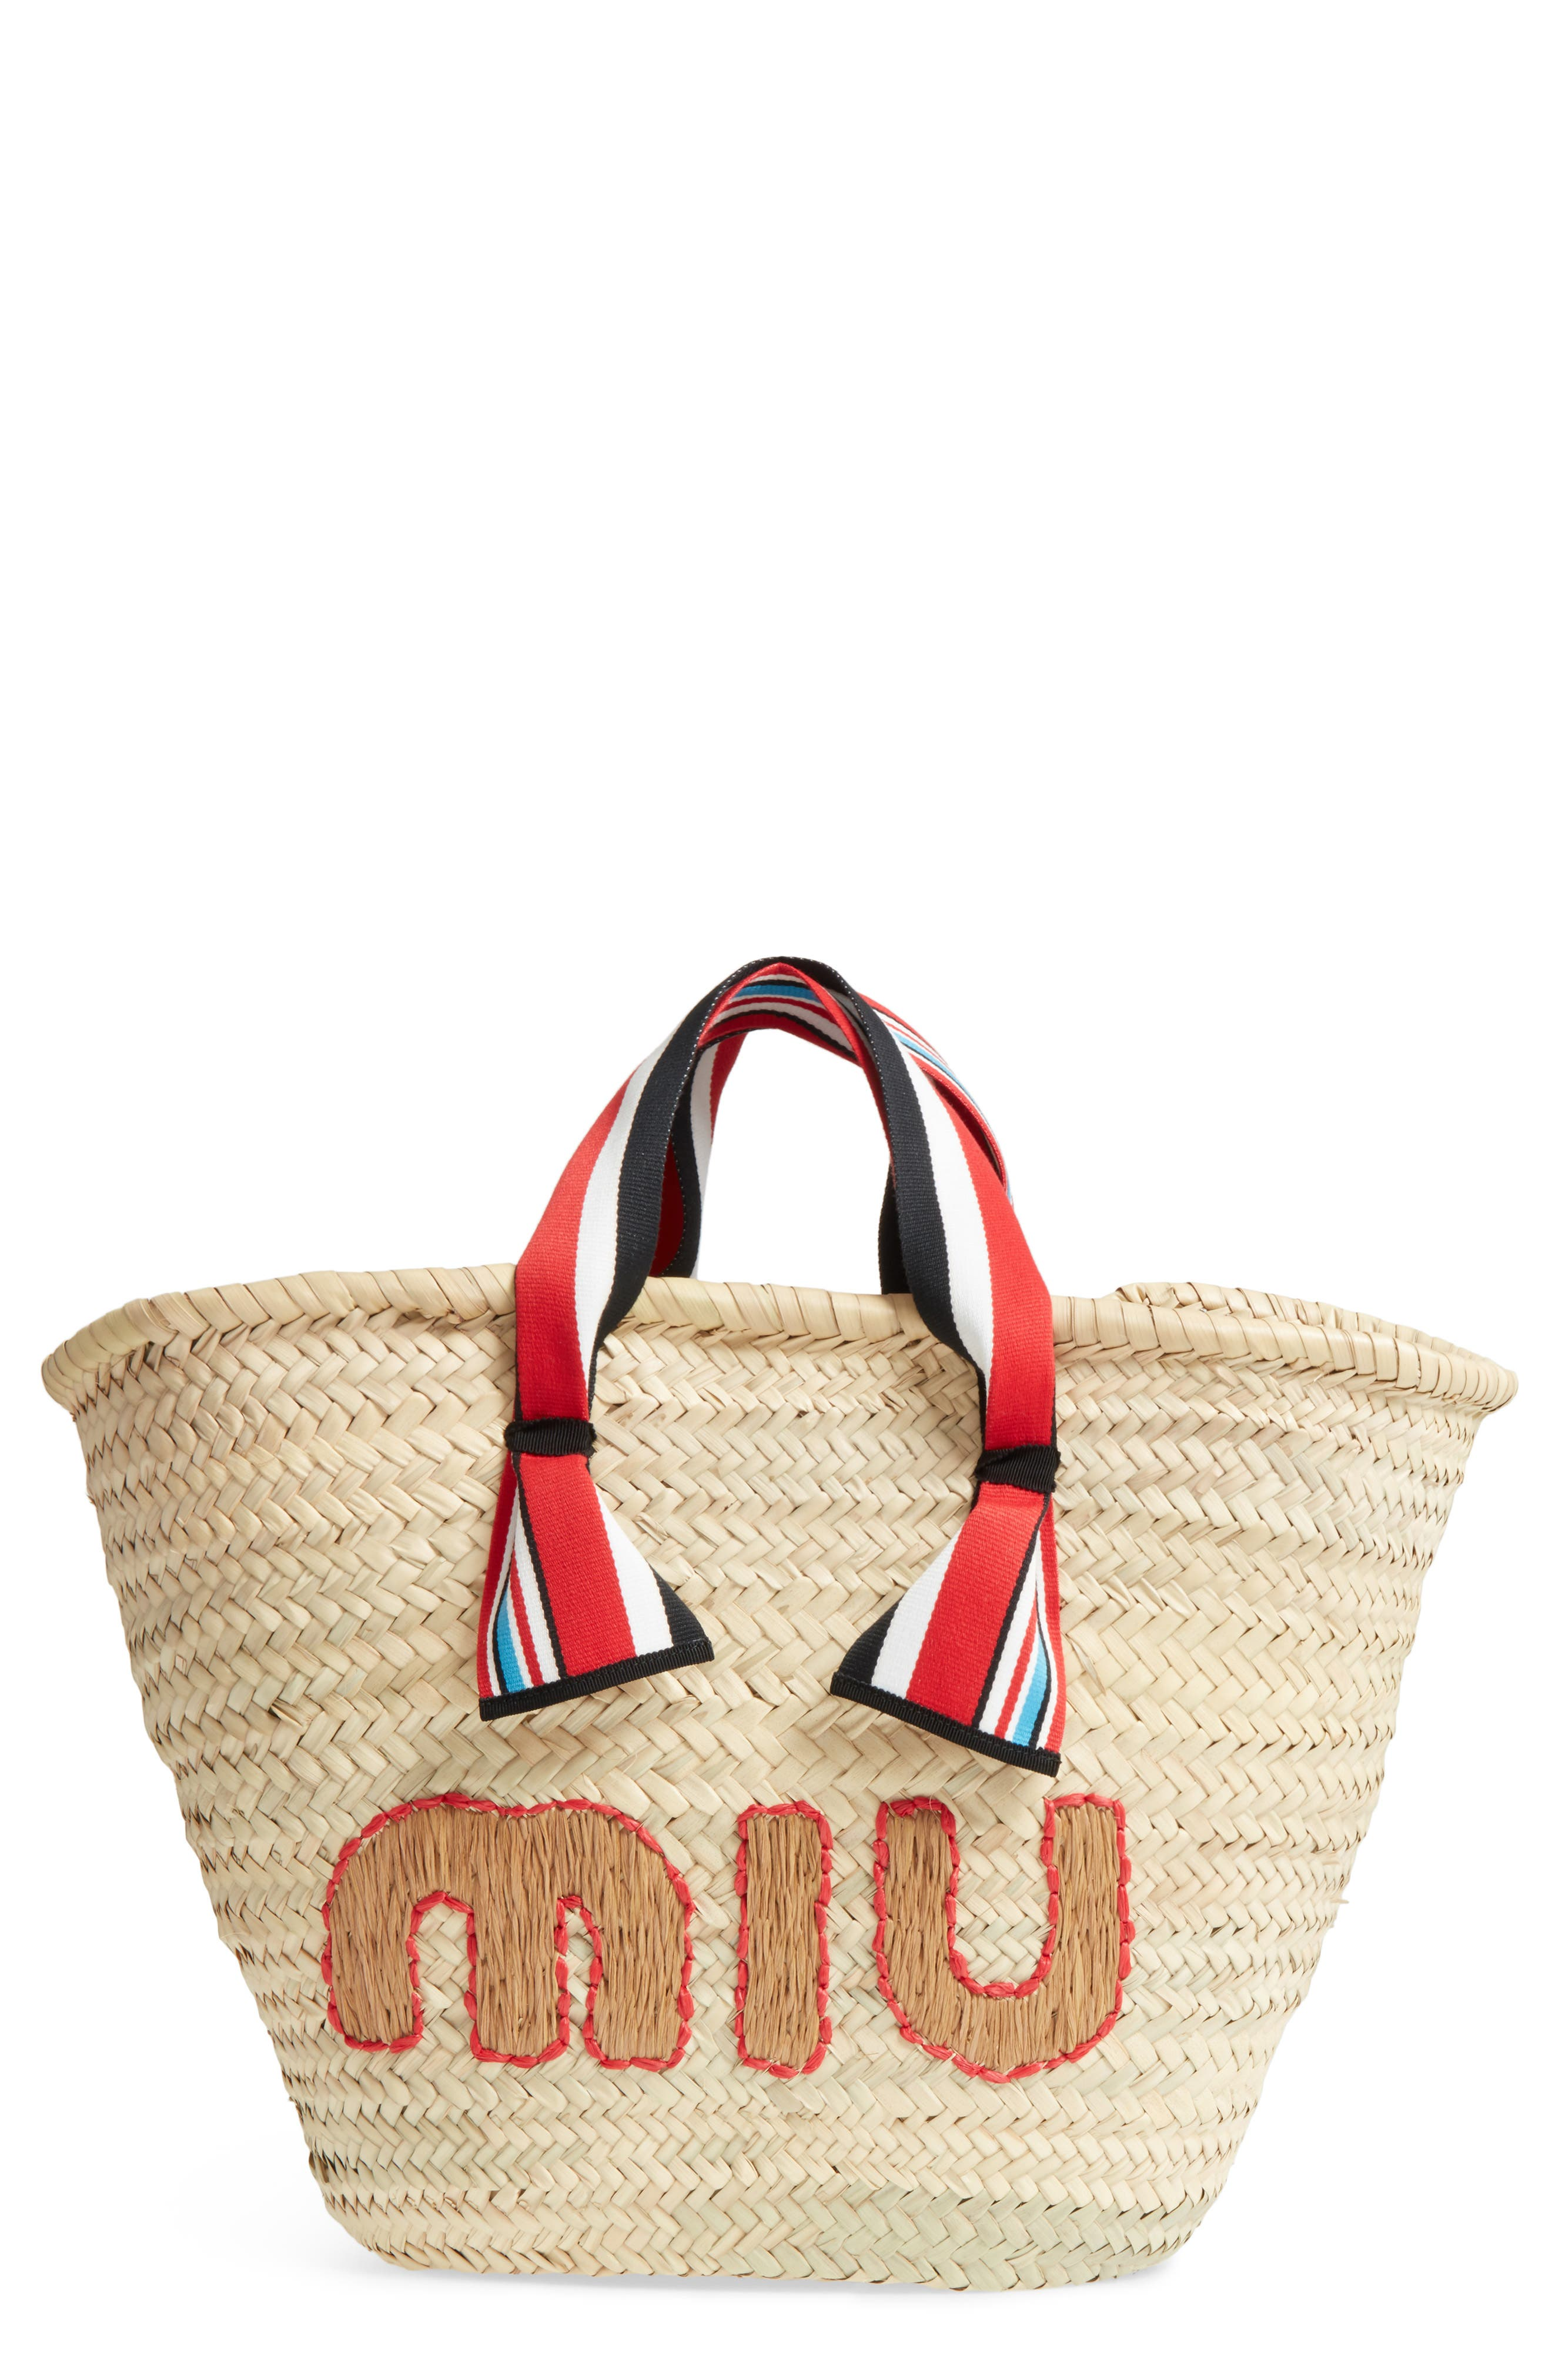 Paglia Straw Top Handle Tote,                             Main thumbnail 1, color,                             250